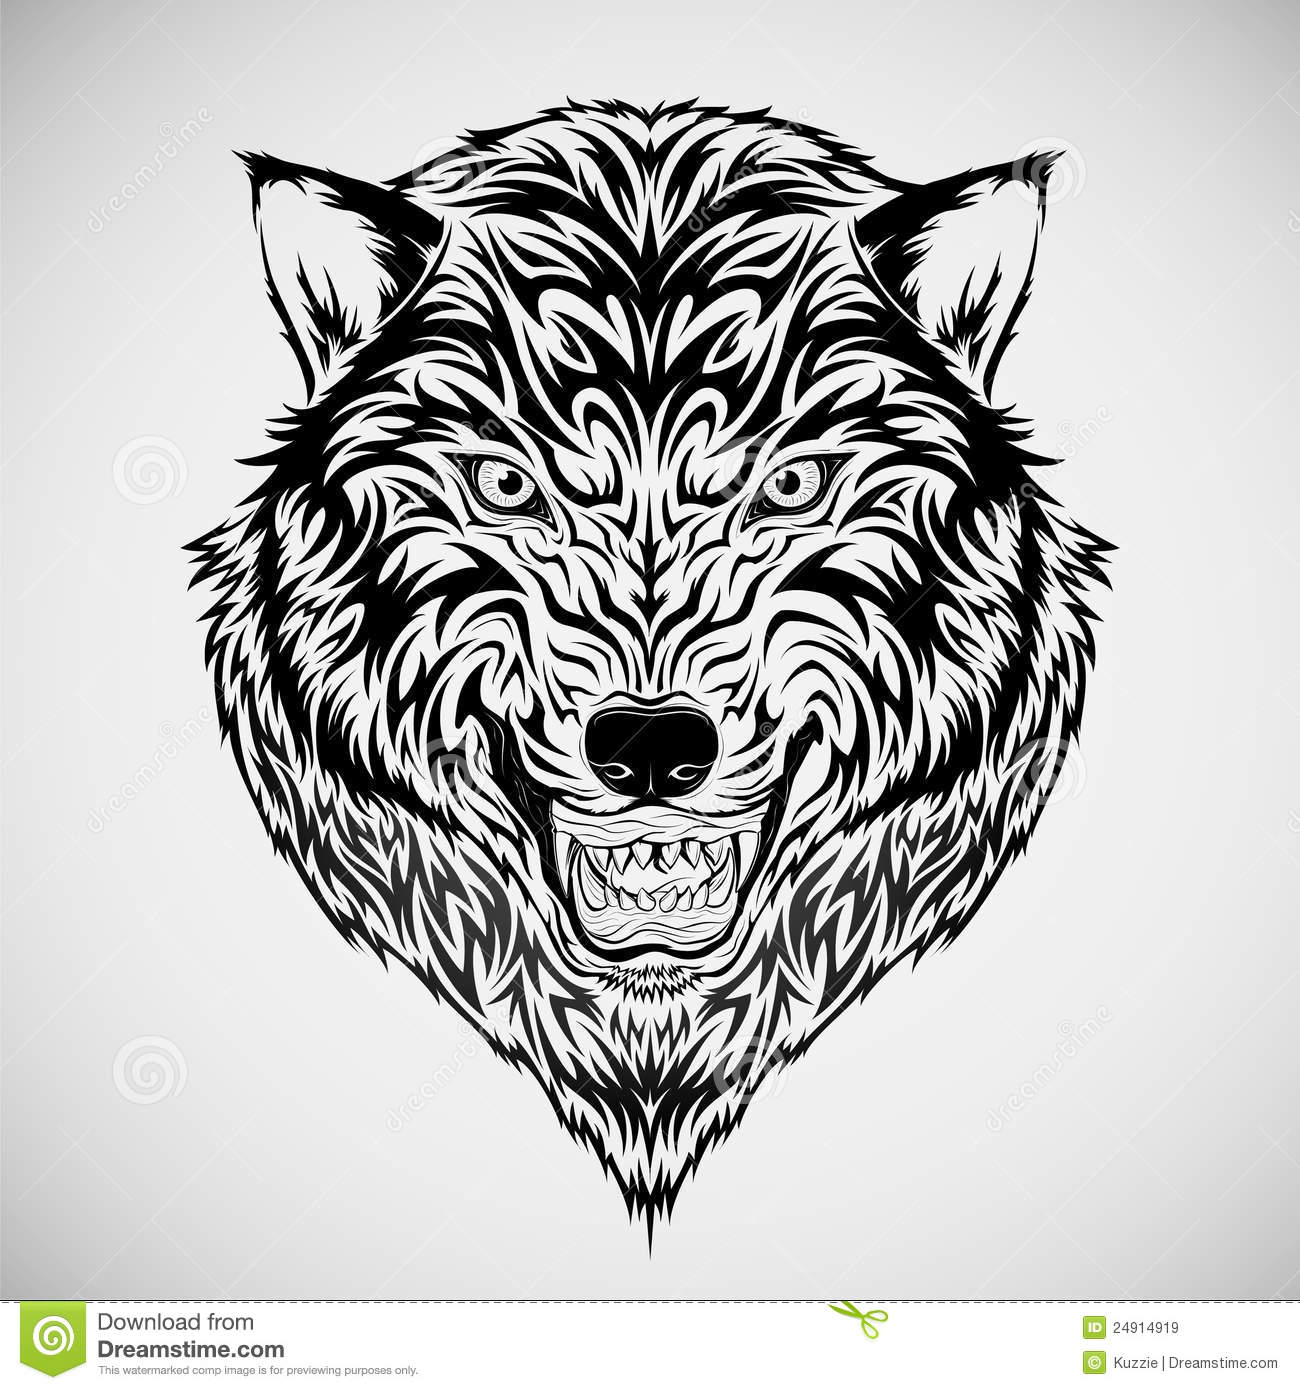 Tribal wolf head tattoo royalty free stock images image 24914919